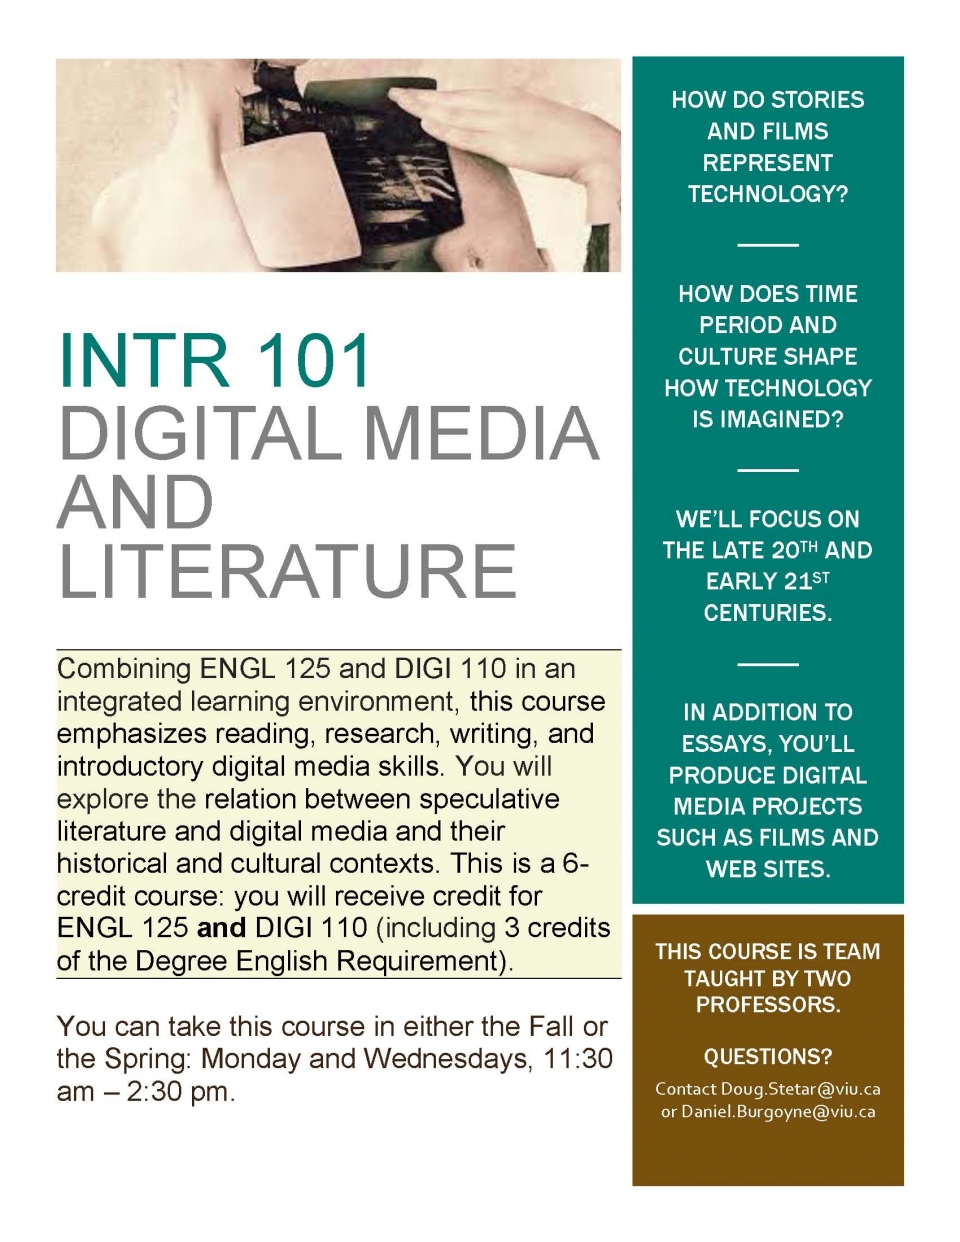 INTR 101 image with course description